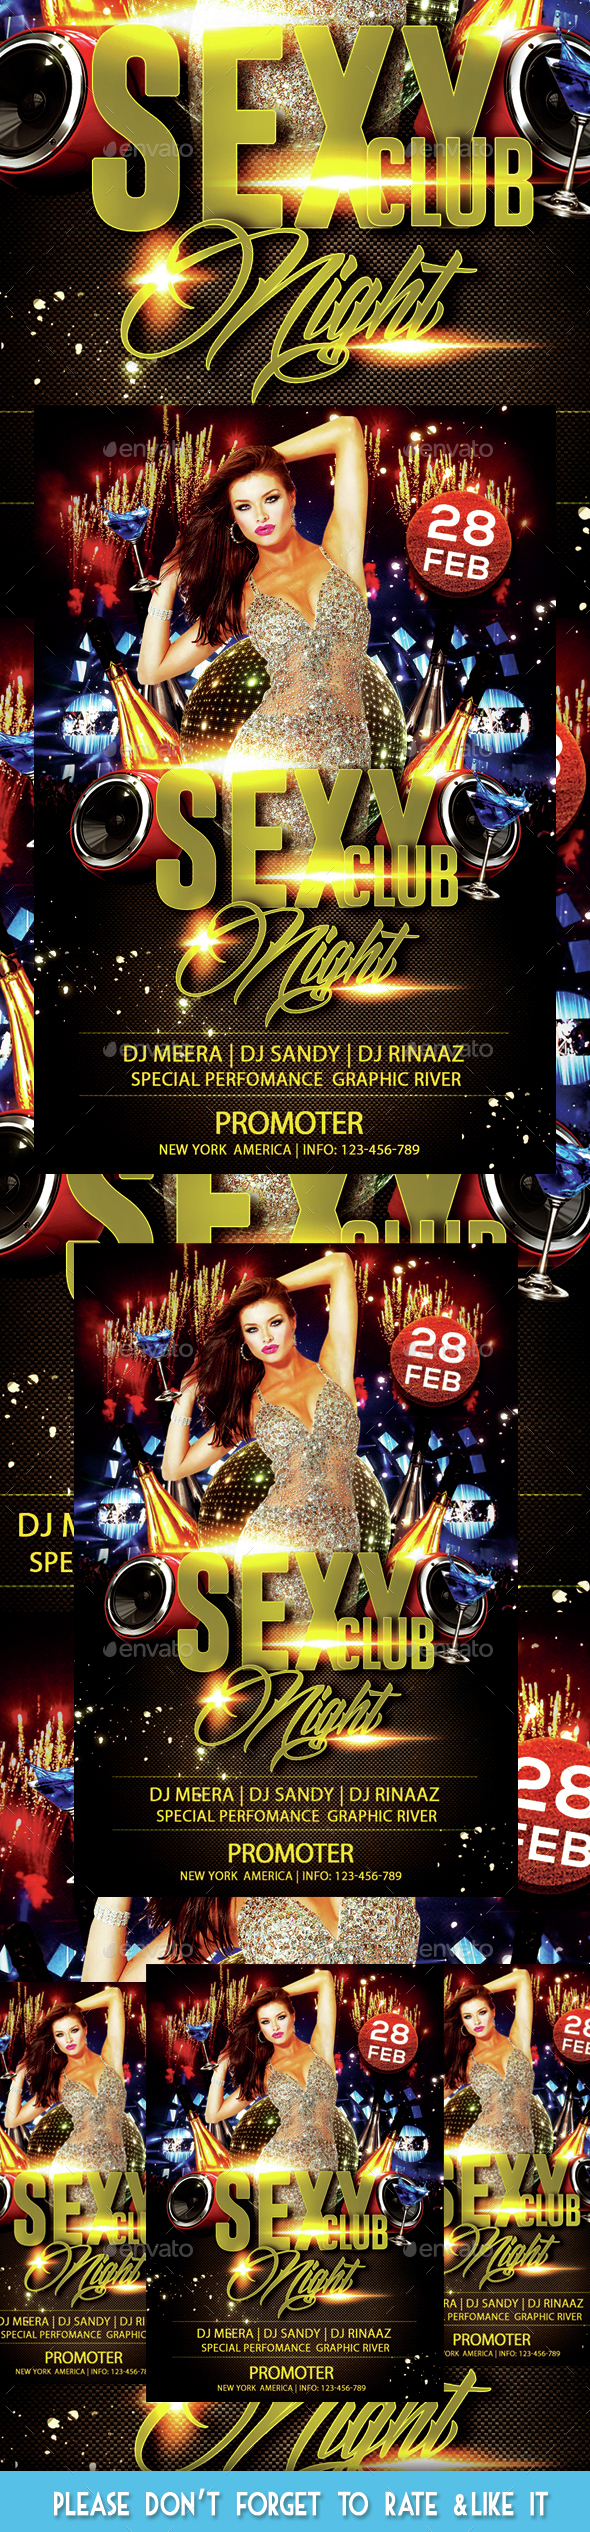 Sexy Club Night Party Flyer - Flyers Print Templates